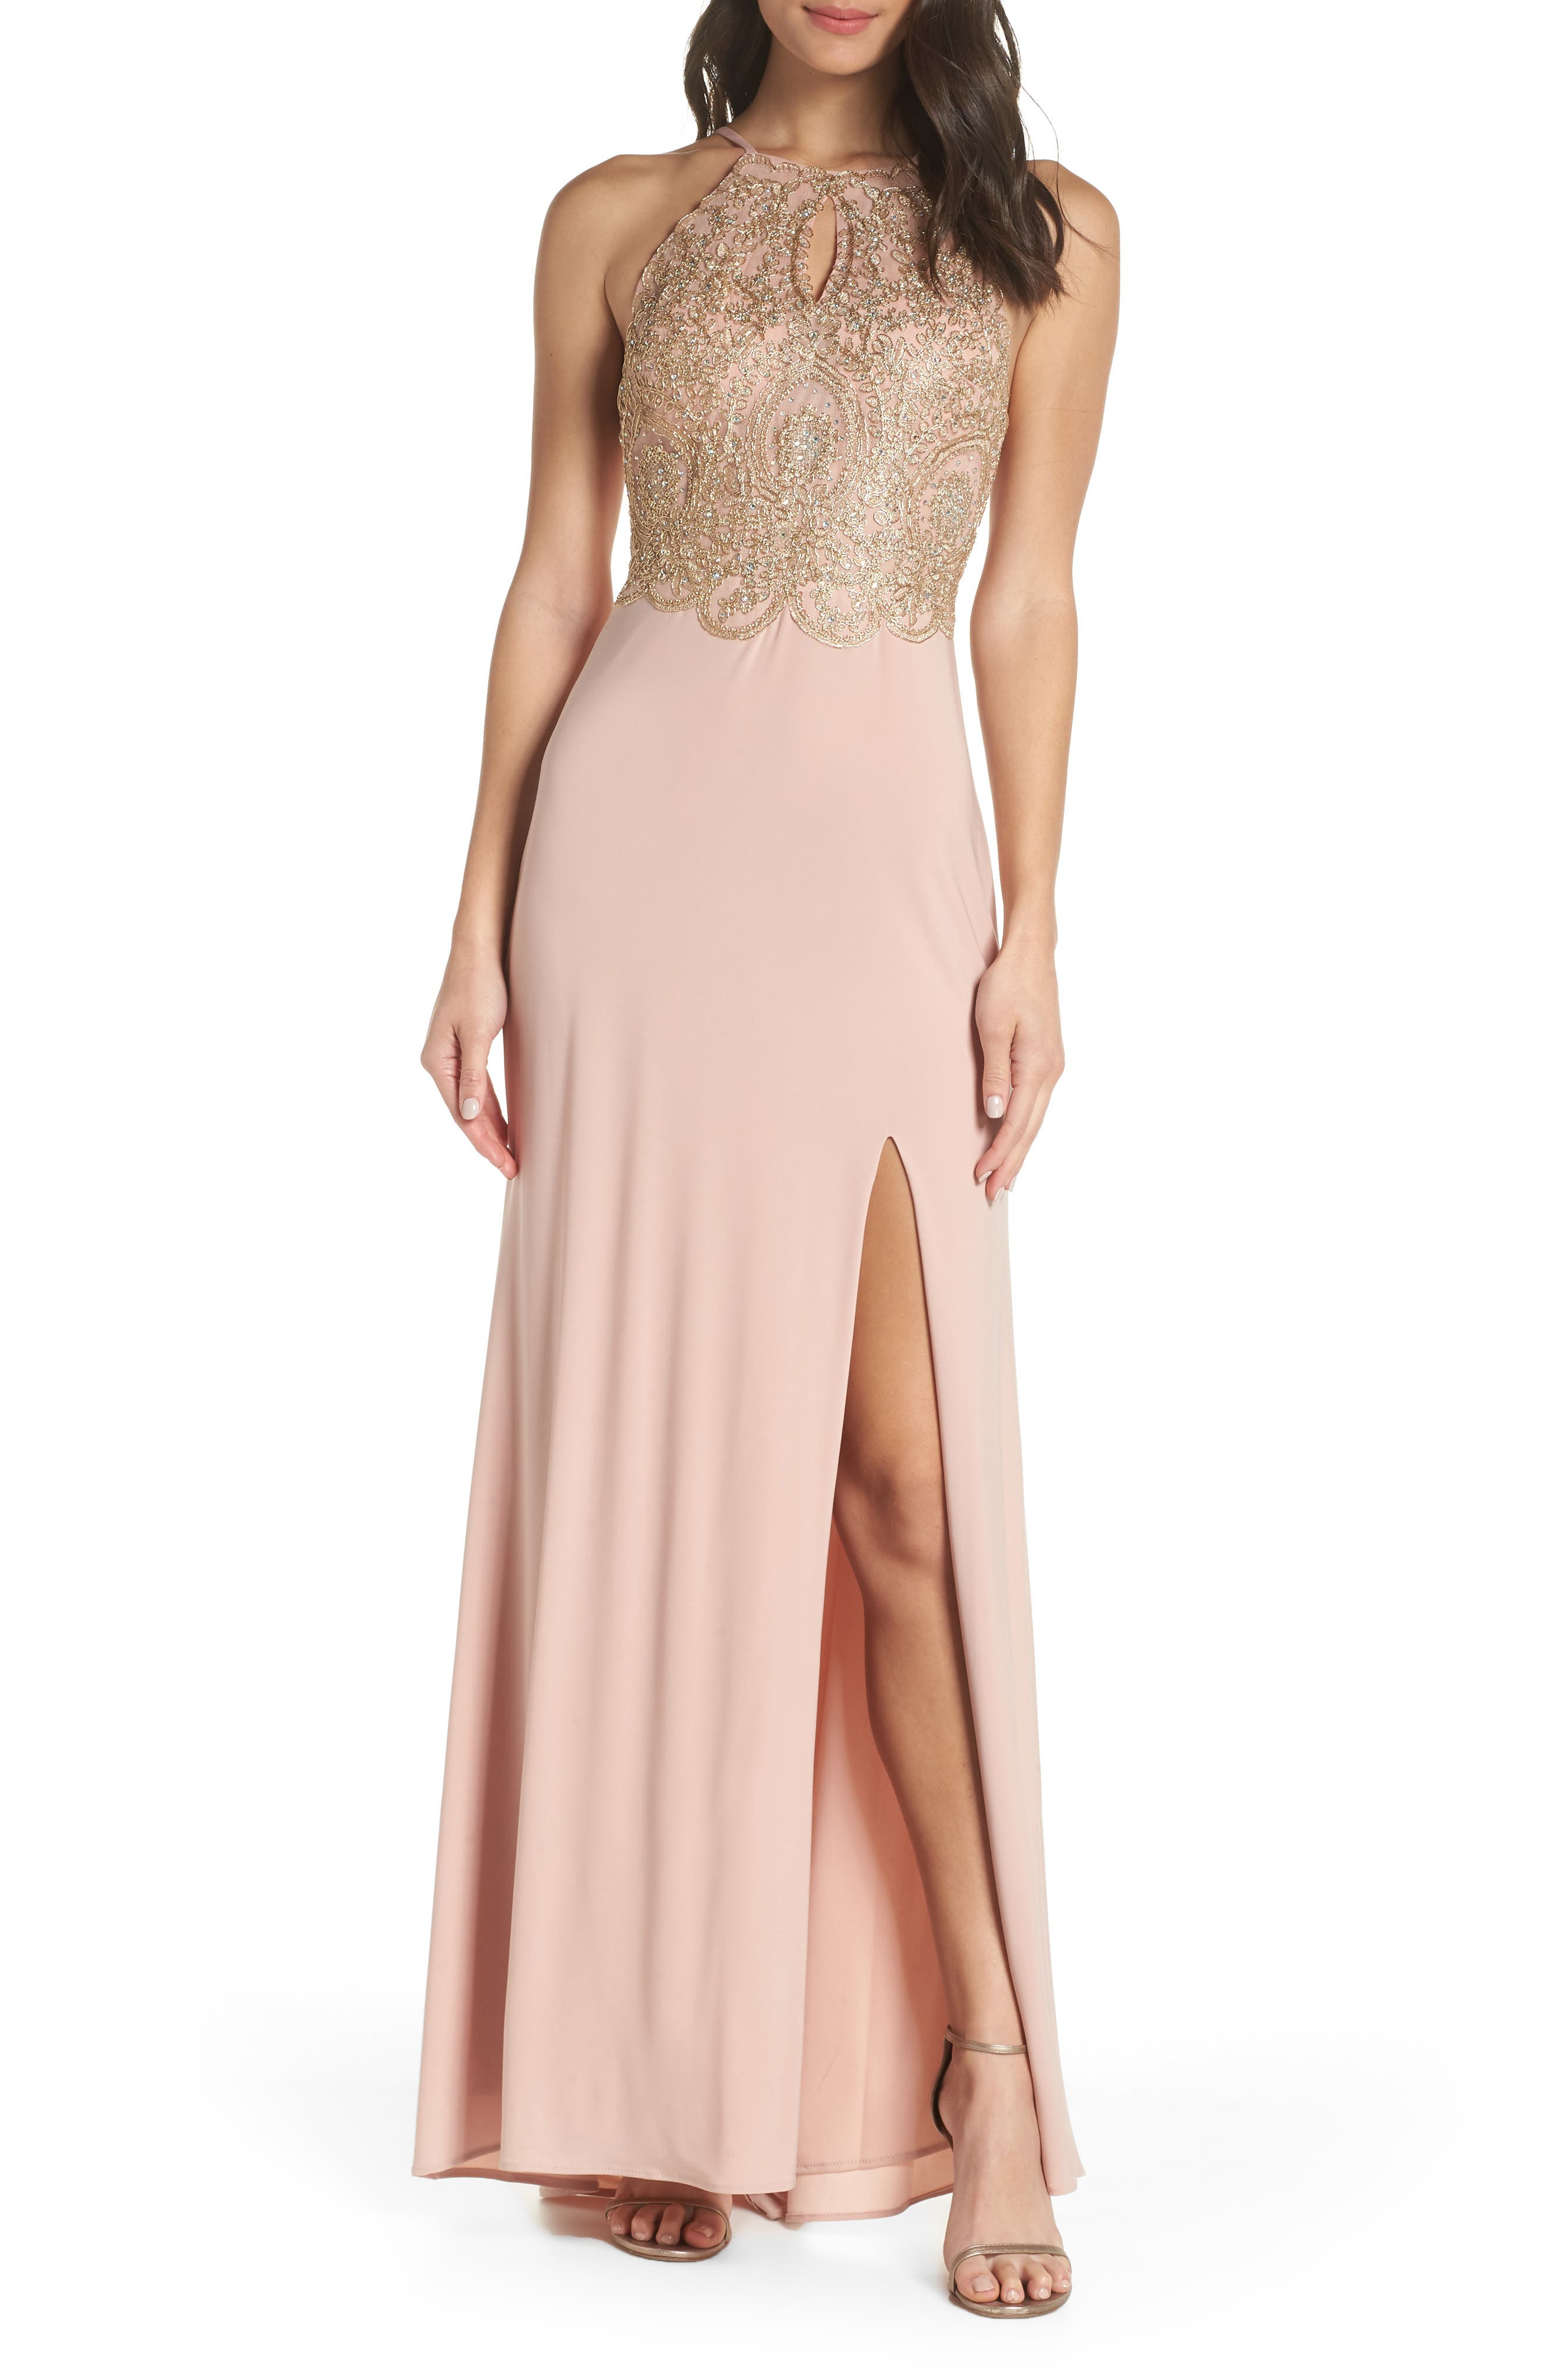 Blondie Nites Embellished Applique Halter Gown, Pink